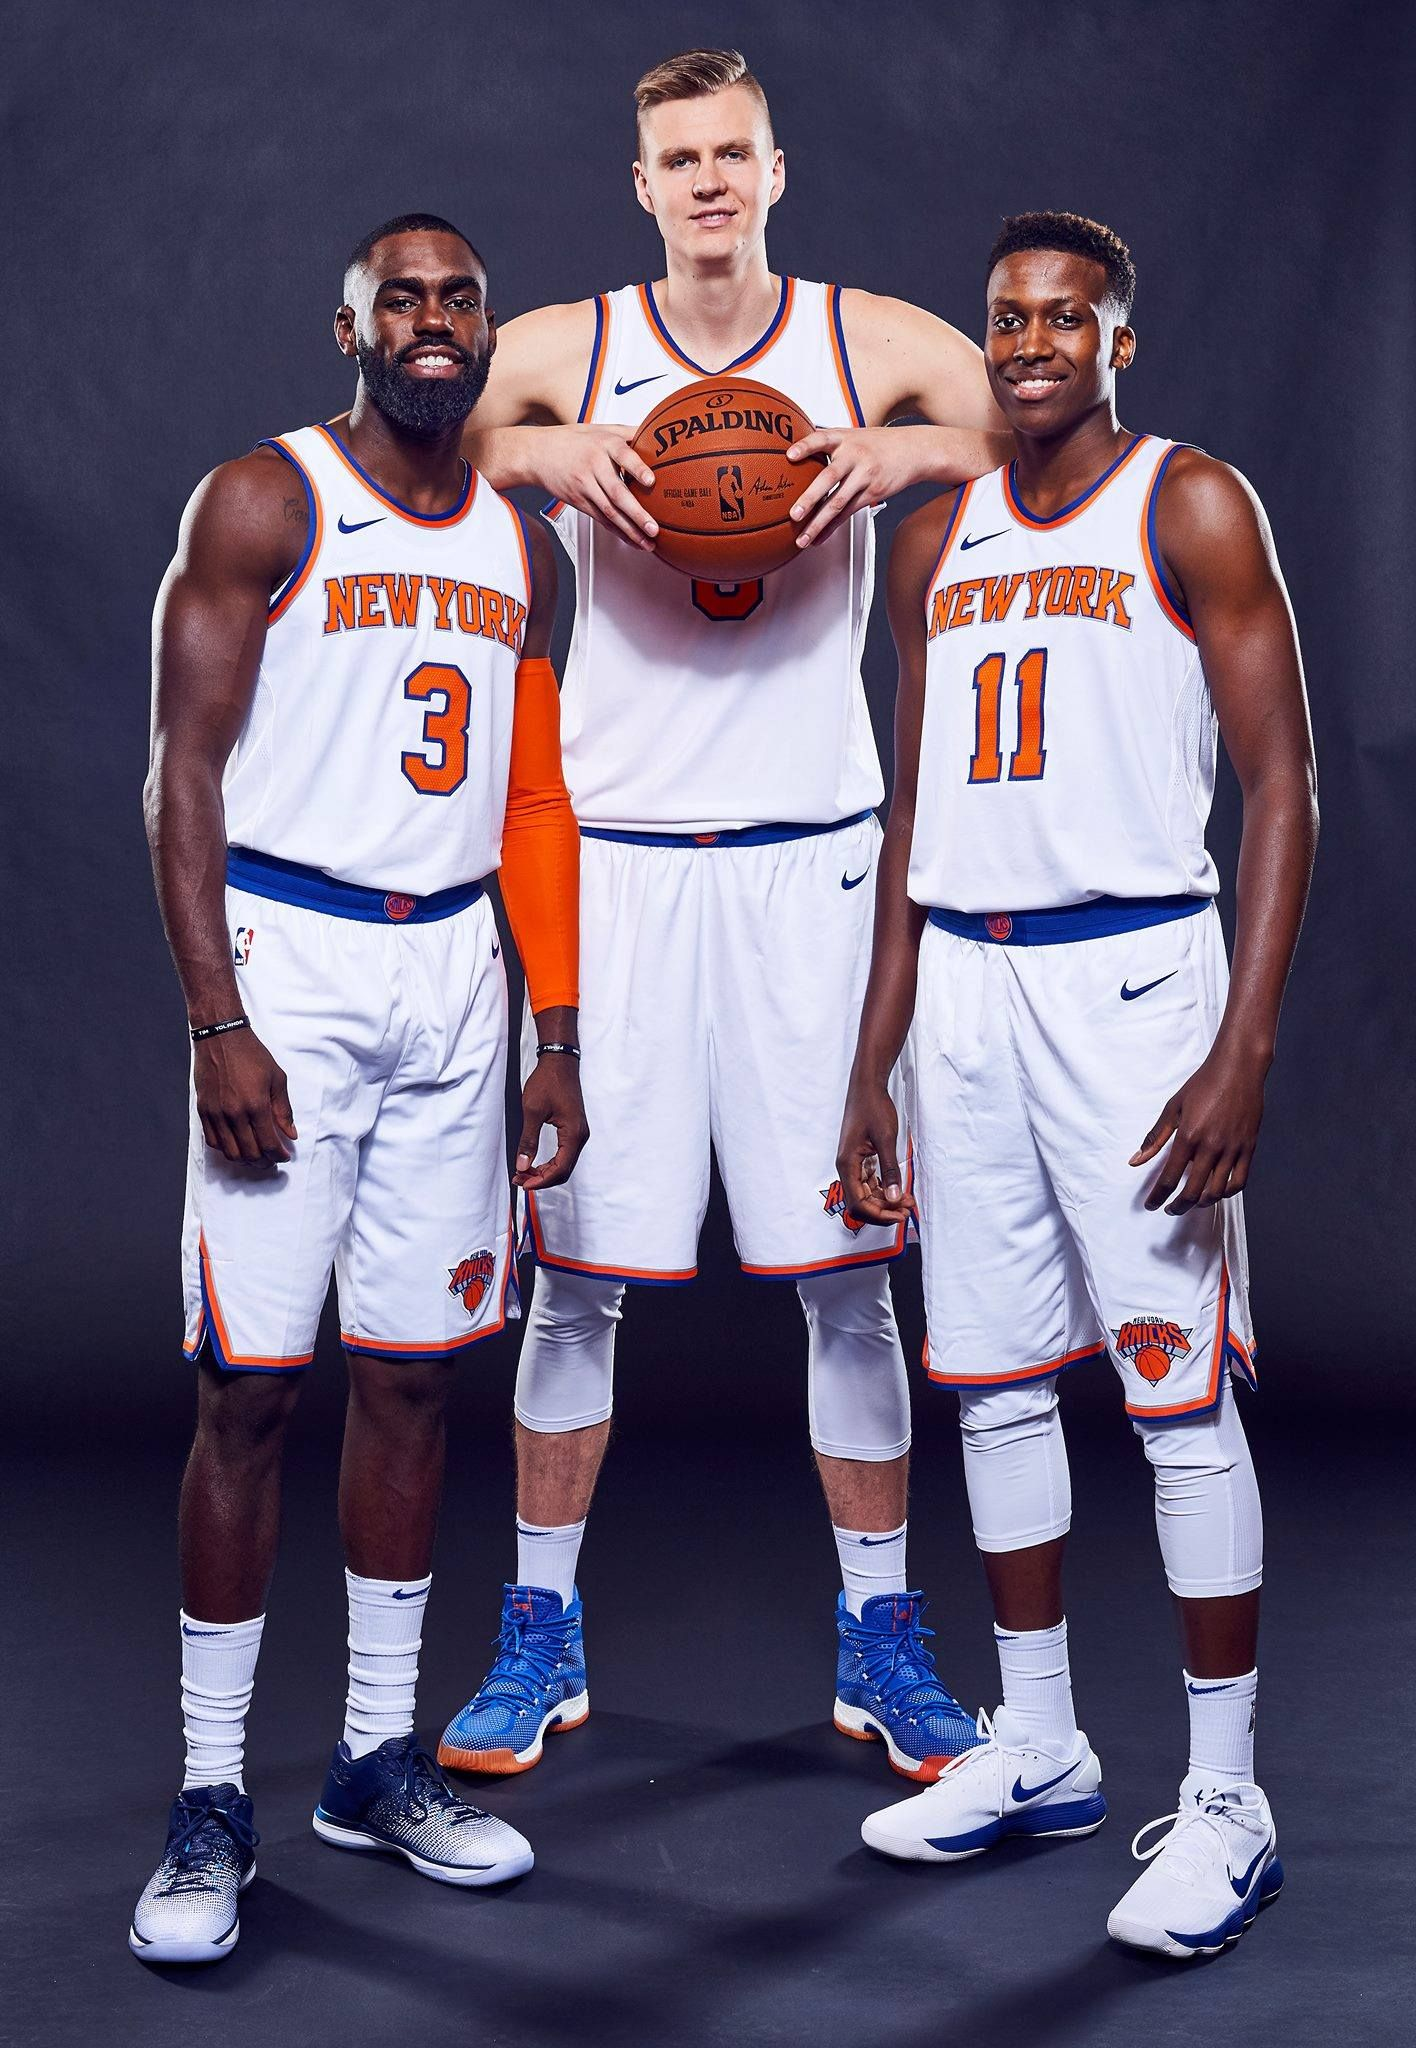 separation shoes 20eed e4b3d New York Knicks 2017-2018 Season Games | Exciting Sports ...